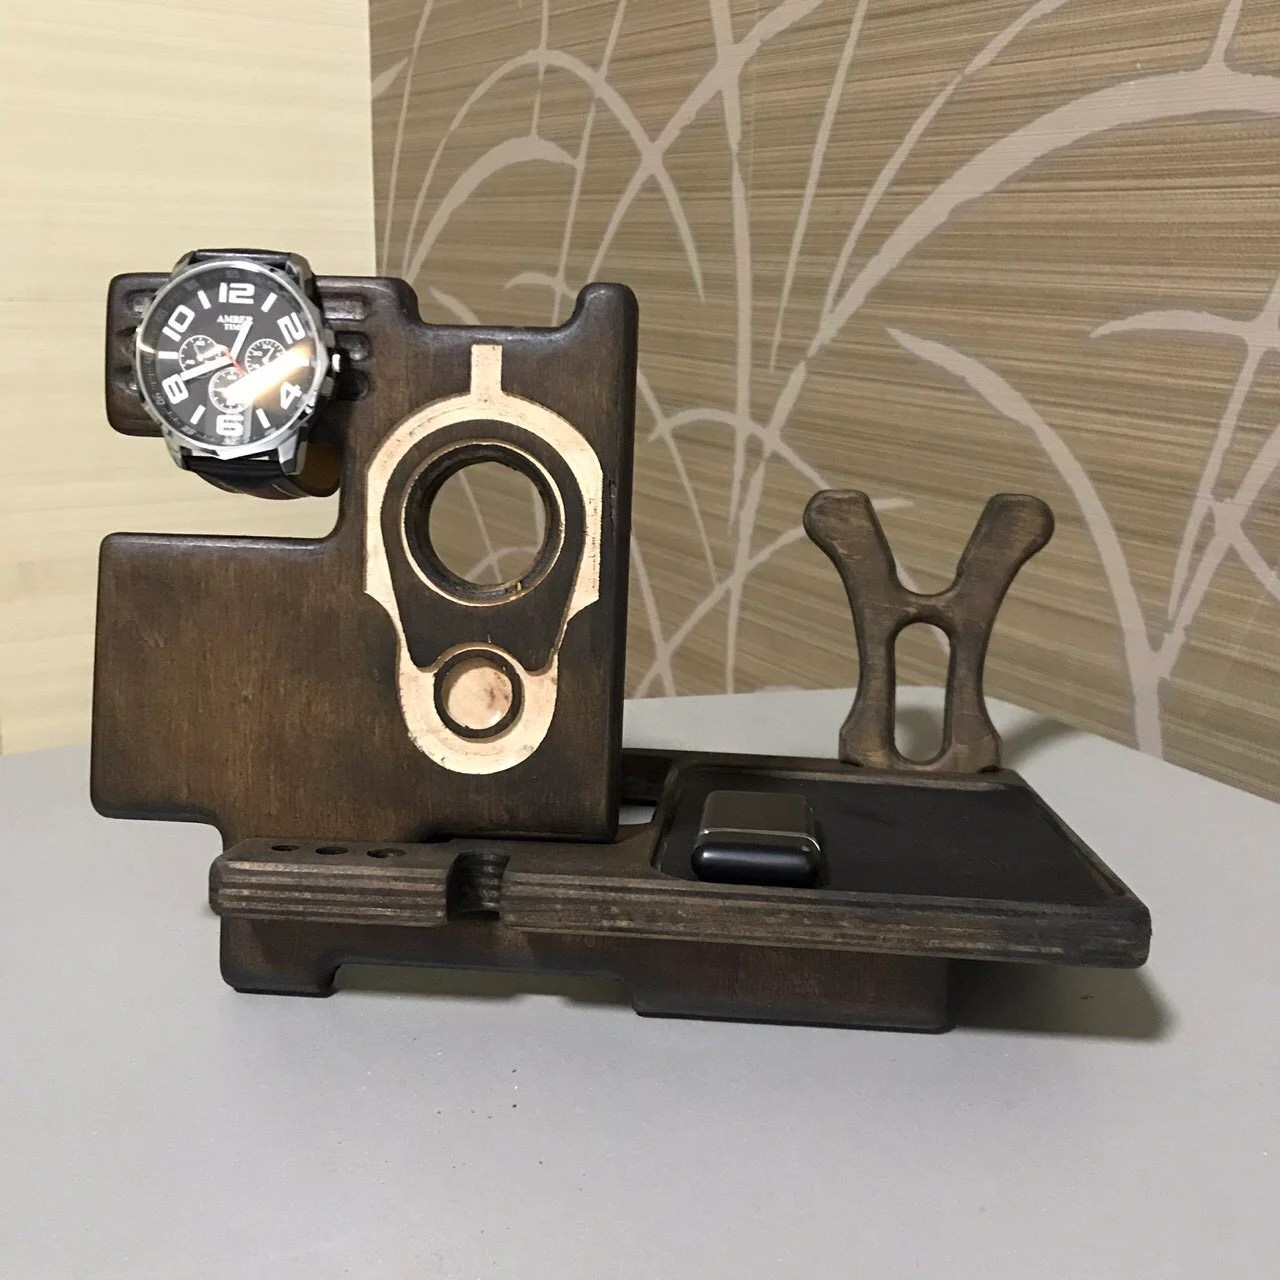 Gun Rack With Nightstand Phone Organizer Pistol Stand Charging Station And Weapon Rack Stand Gift For Groom From Bride